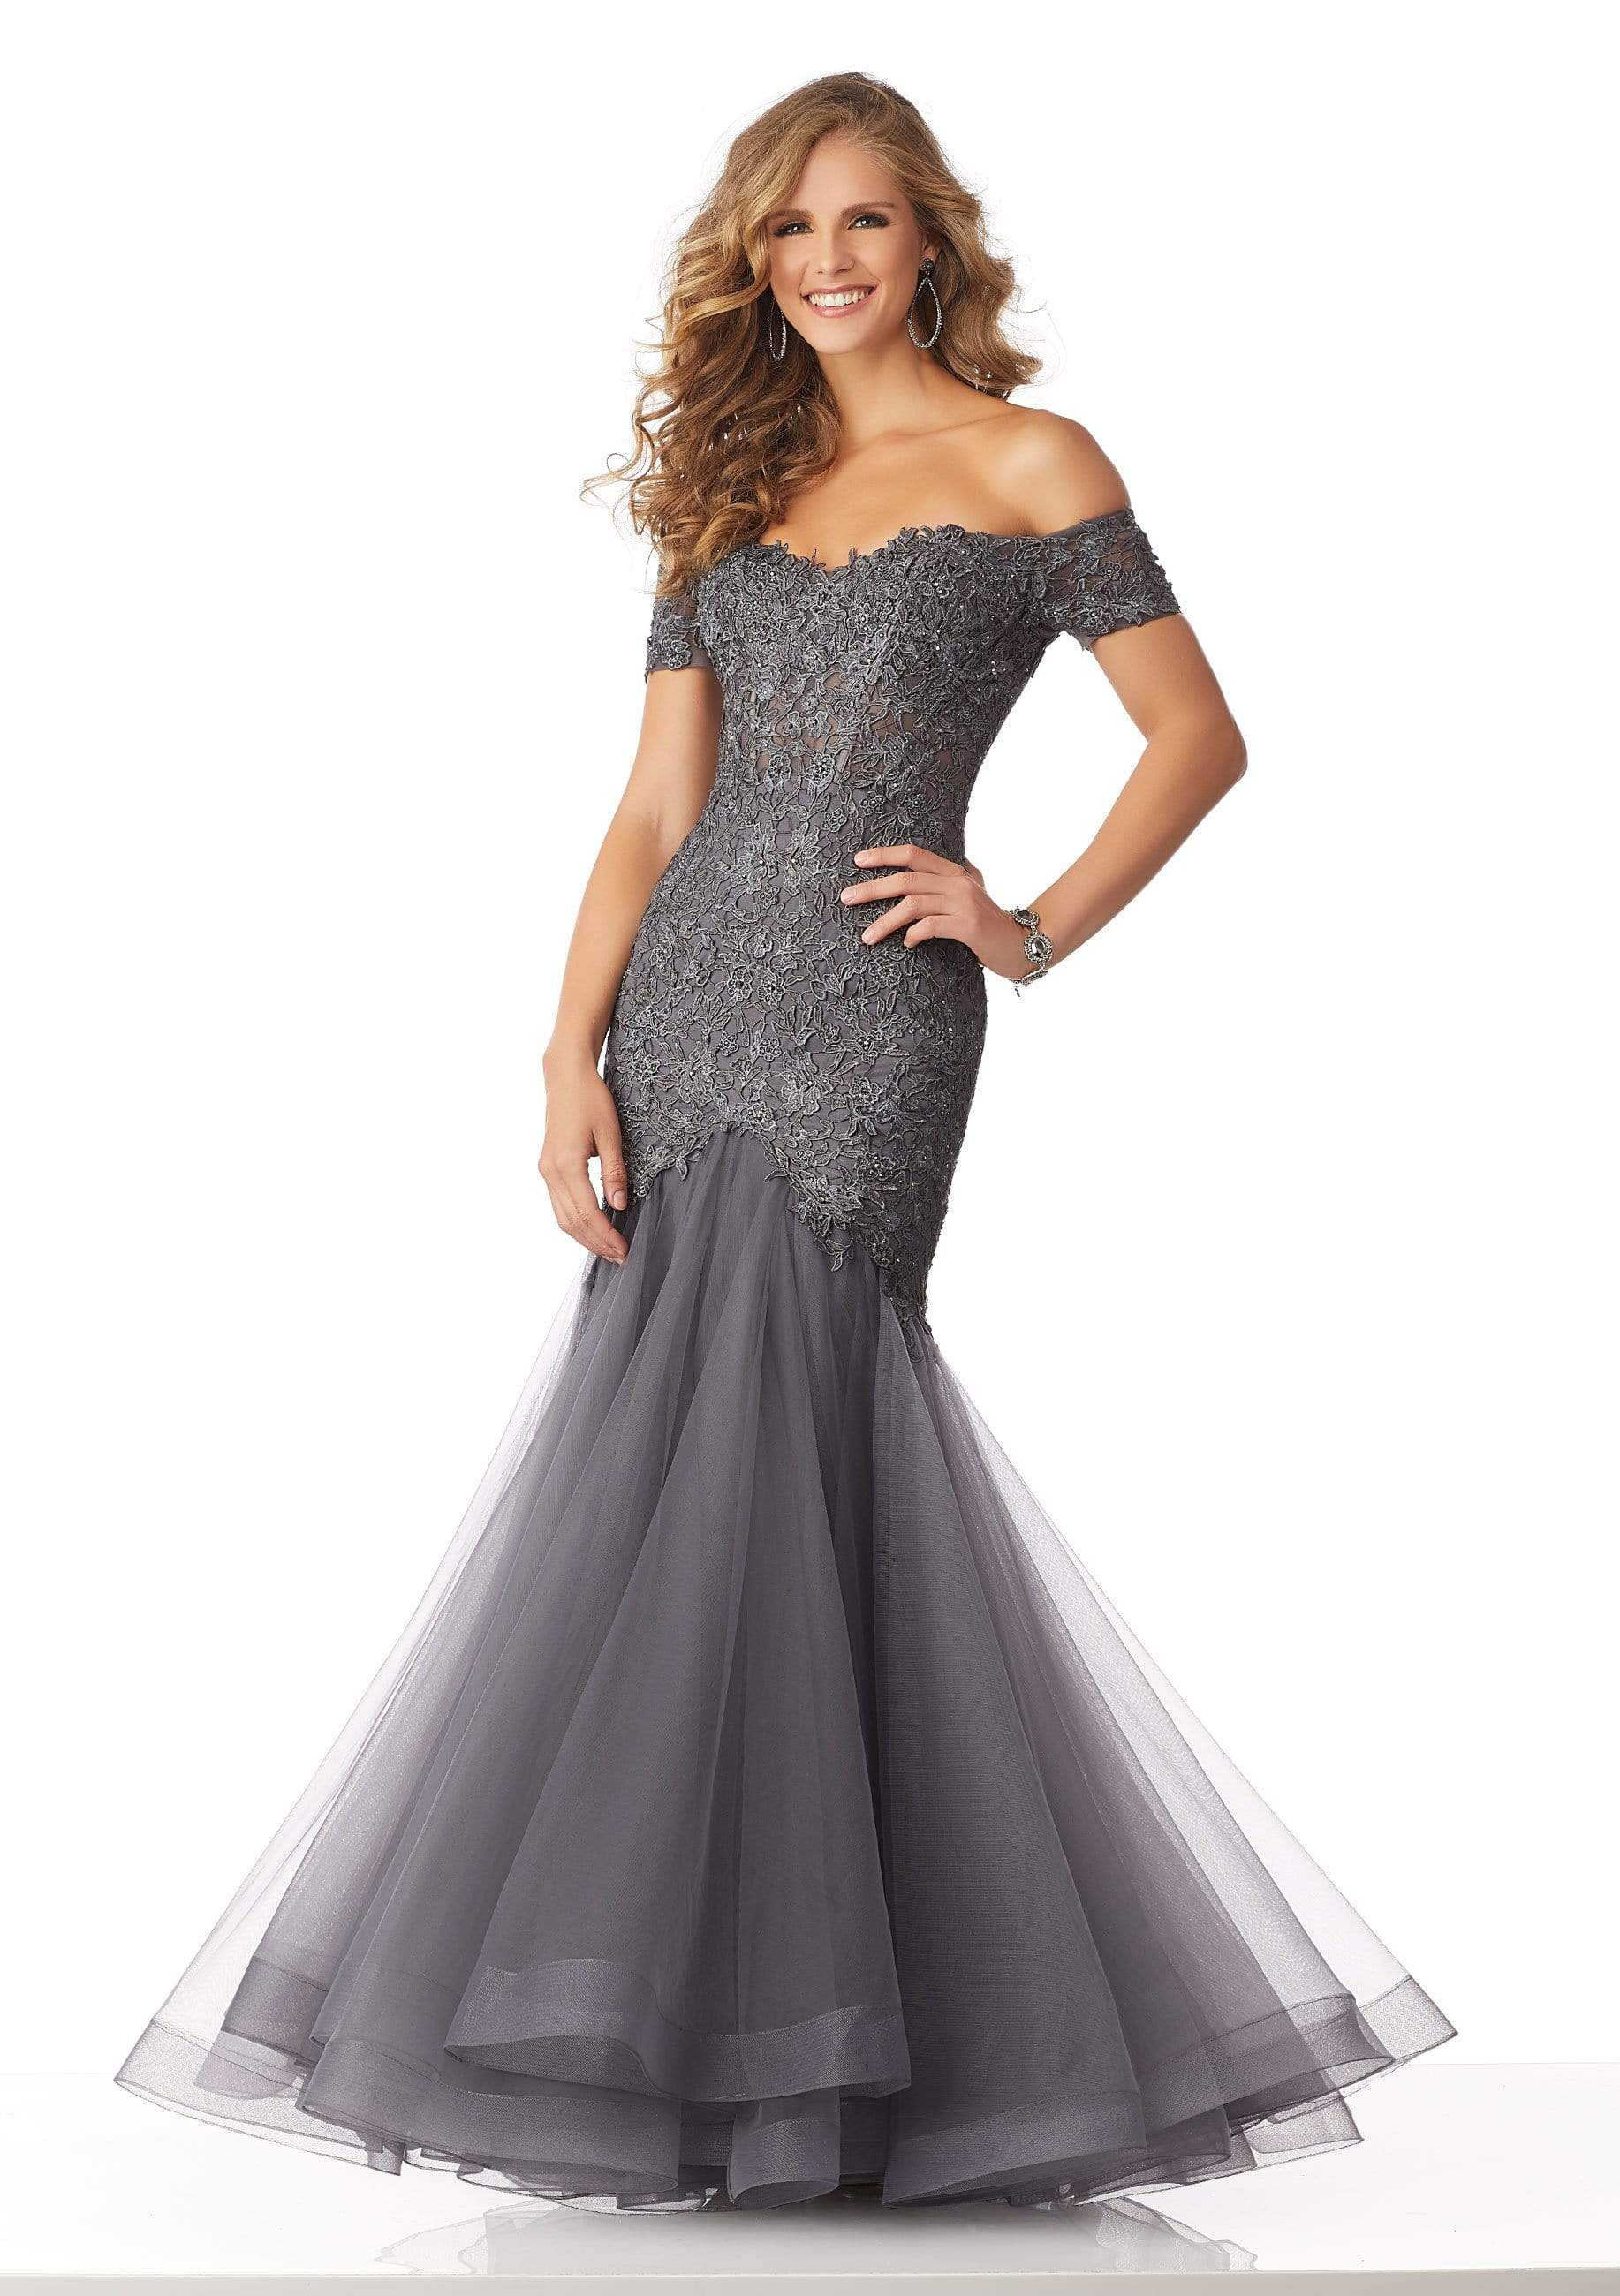 MGNY By Mori Lee - 71825 Lace Appliqued Off-Shoulder Trumpet Dress Pageant Dresses 0 / Charcoal